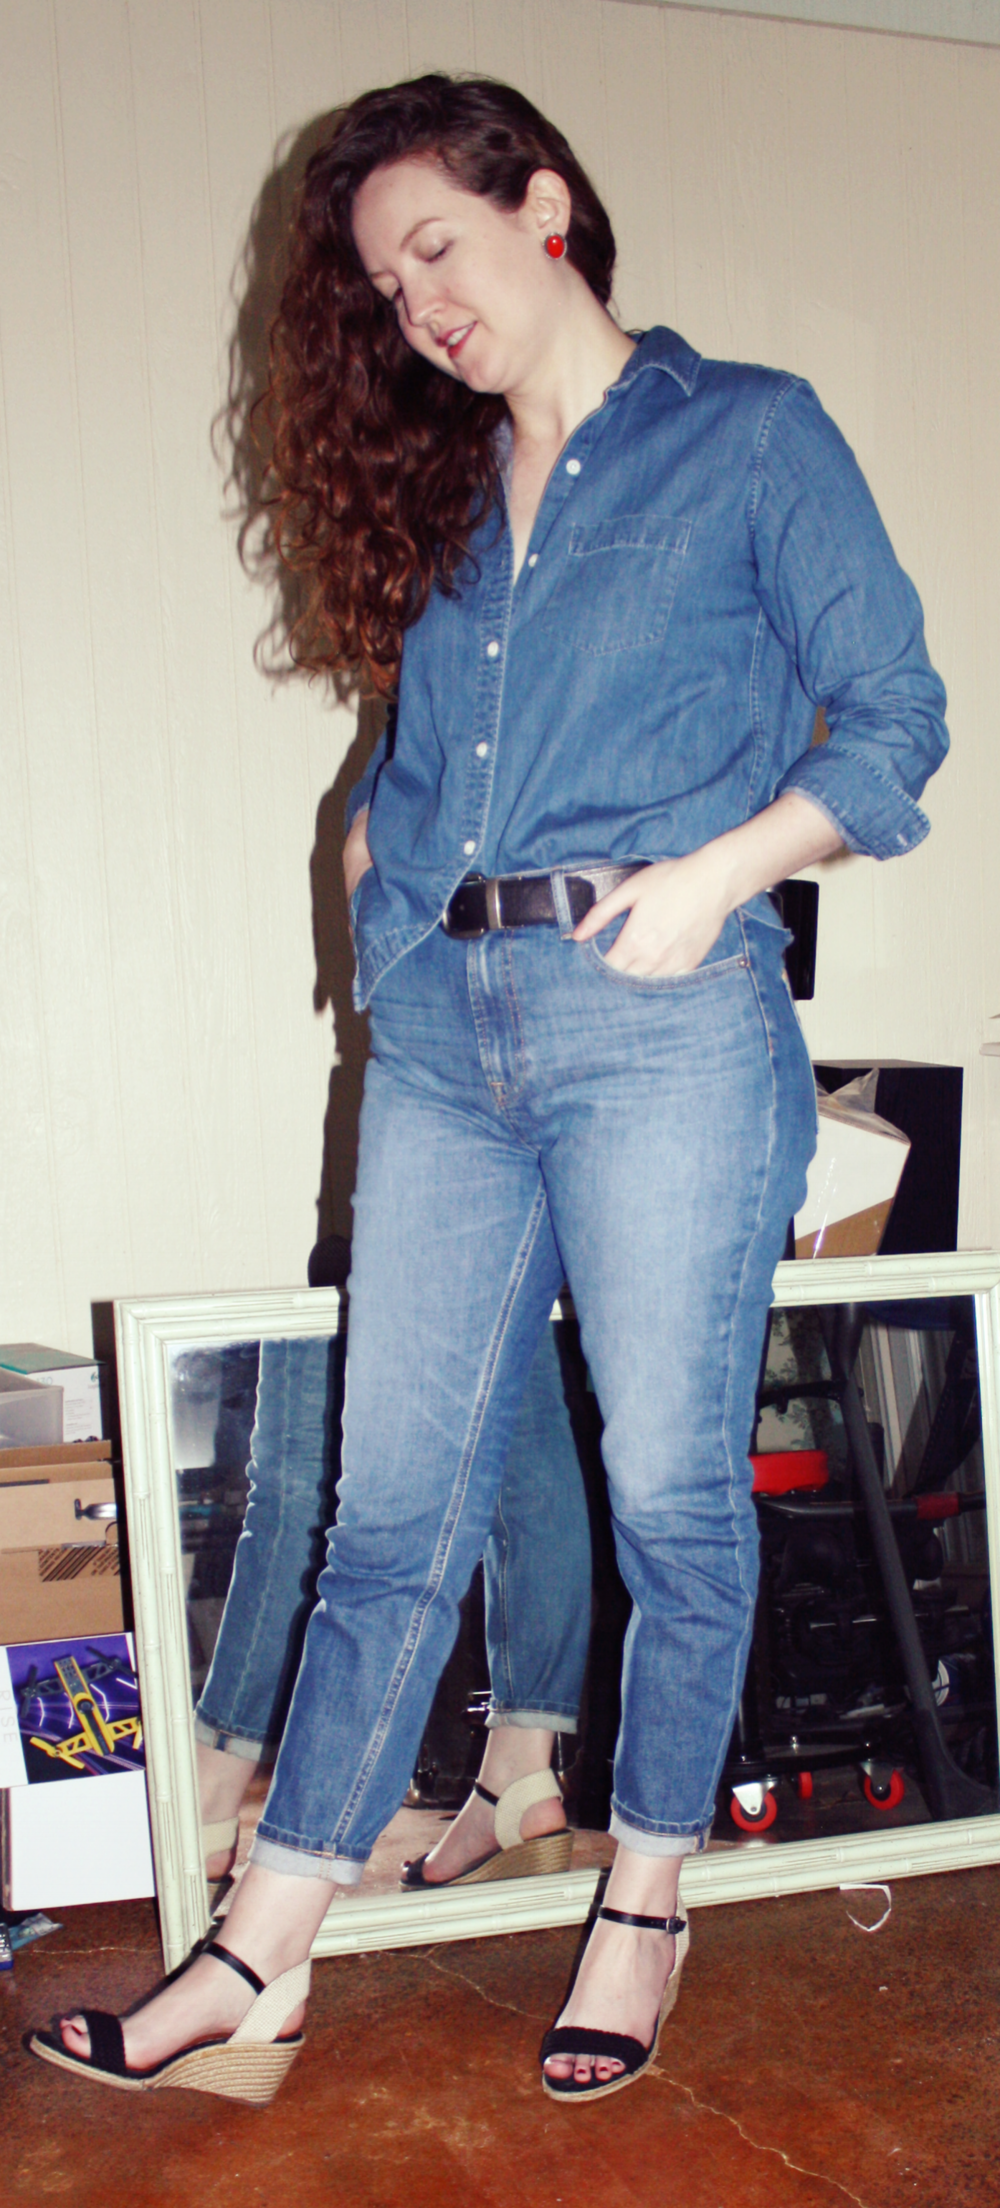 Grana Denim Shirt + Everlane High Rise Skinny + Wedges